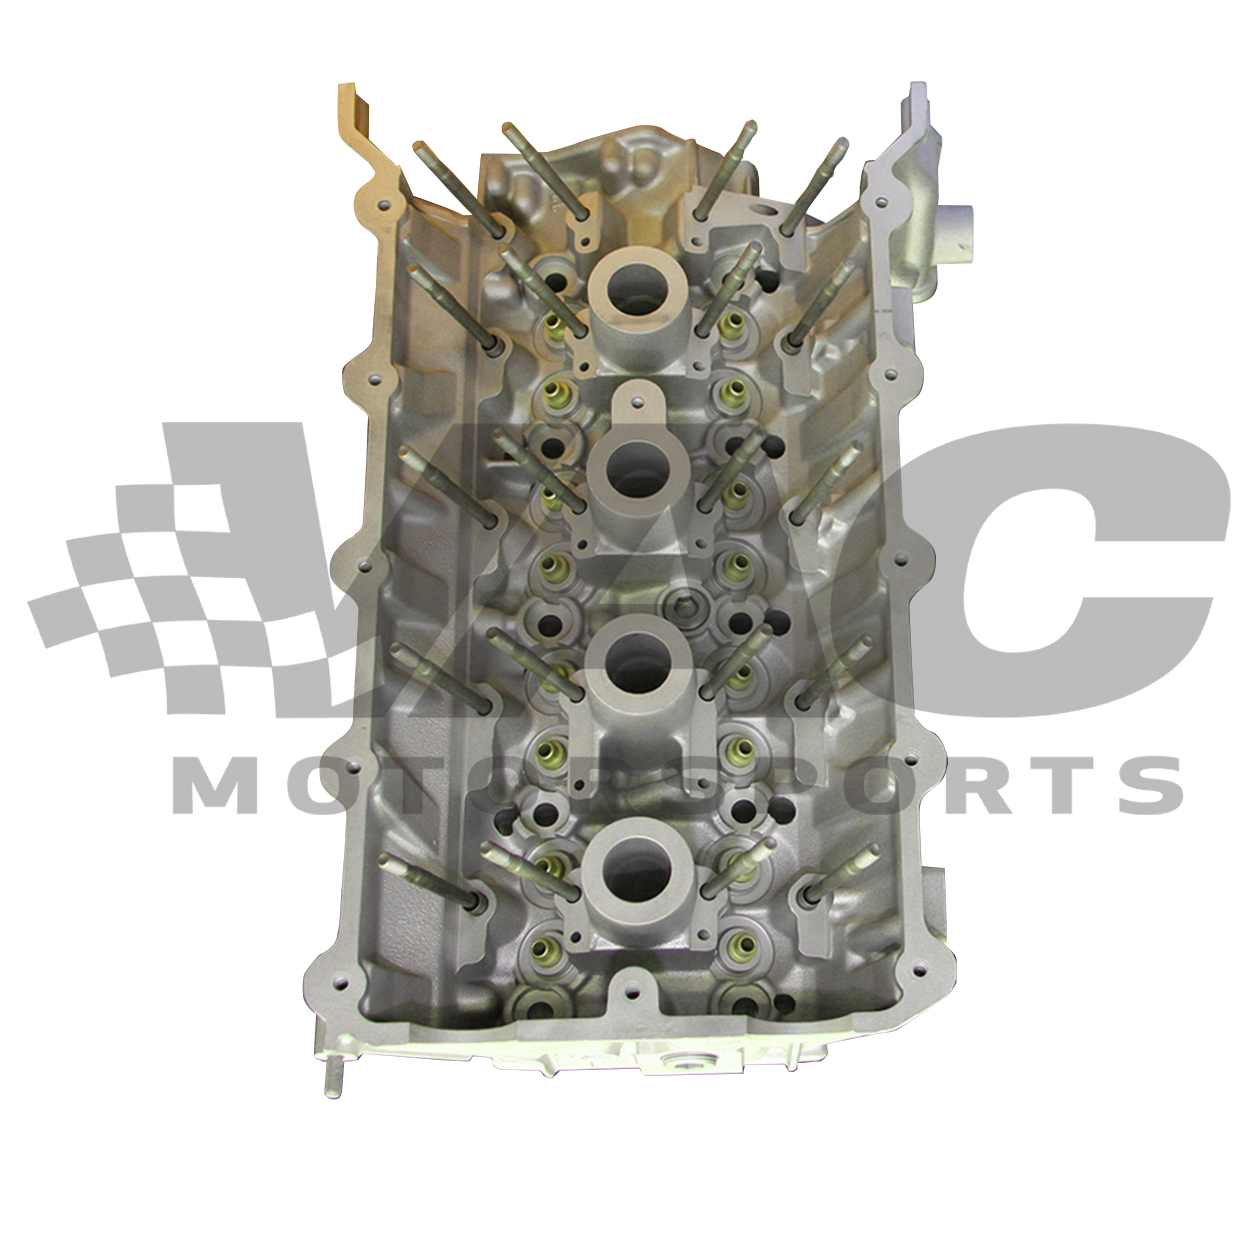 VAC - M42 Stage 3 Performance Cylinder Head MAIN